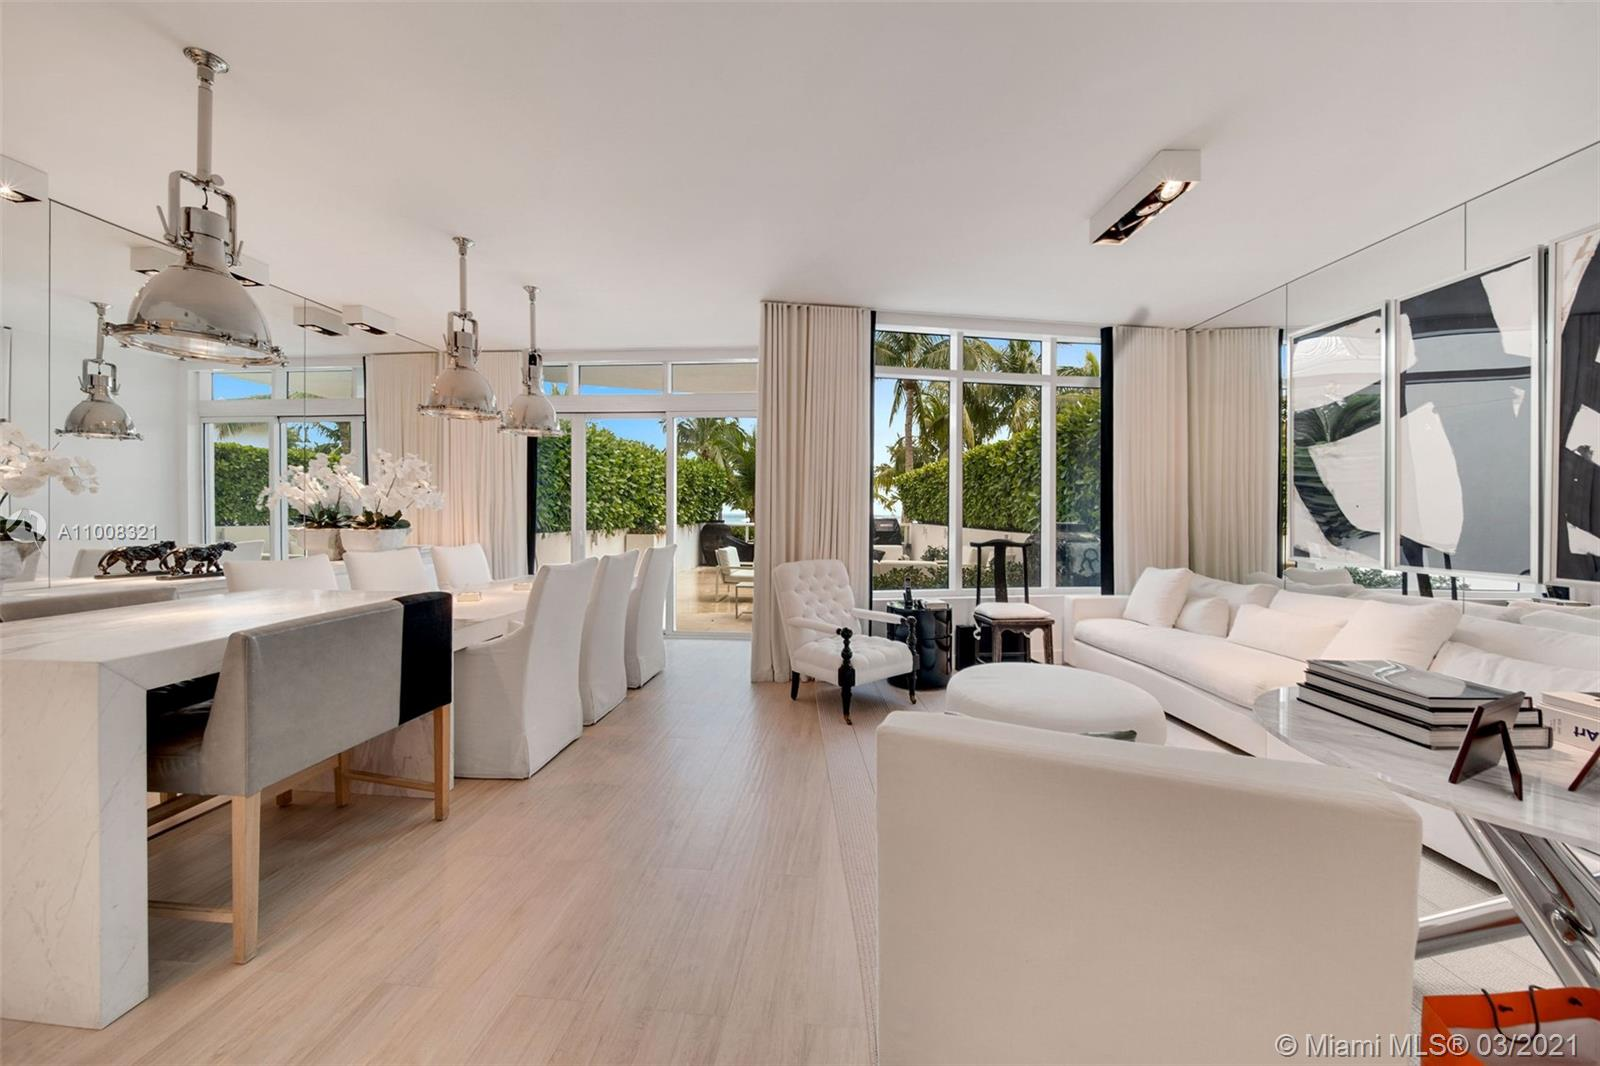 A rare and significant offering at Continuum North Tower. This unique turn-key townhouse features front row unobstructed ocean views from every level with 4 beds, 4 full bath, large entertainment levels, private hot tub. Designed with meticulous attention to detail by Michael Dawkins. An exclusive upscale beachfront resort with 12 acres, 2 lagoon pools, beach towel and food service, a state-of-the-art gym and spa, restaurant, 3 tennis courts and pro-shop, valet parking, security and concierge.